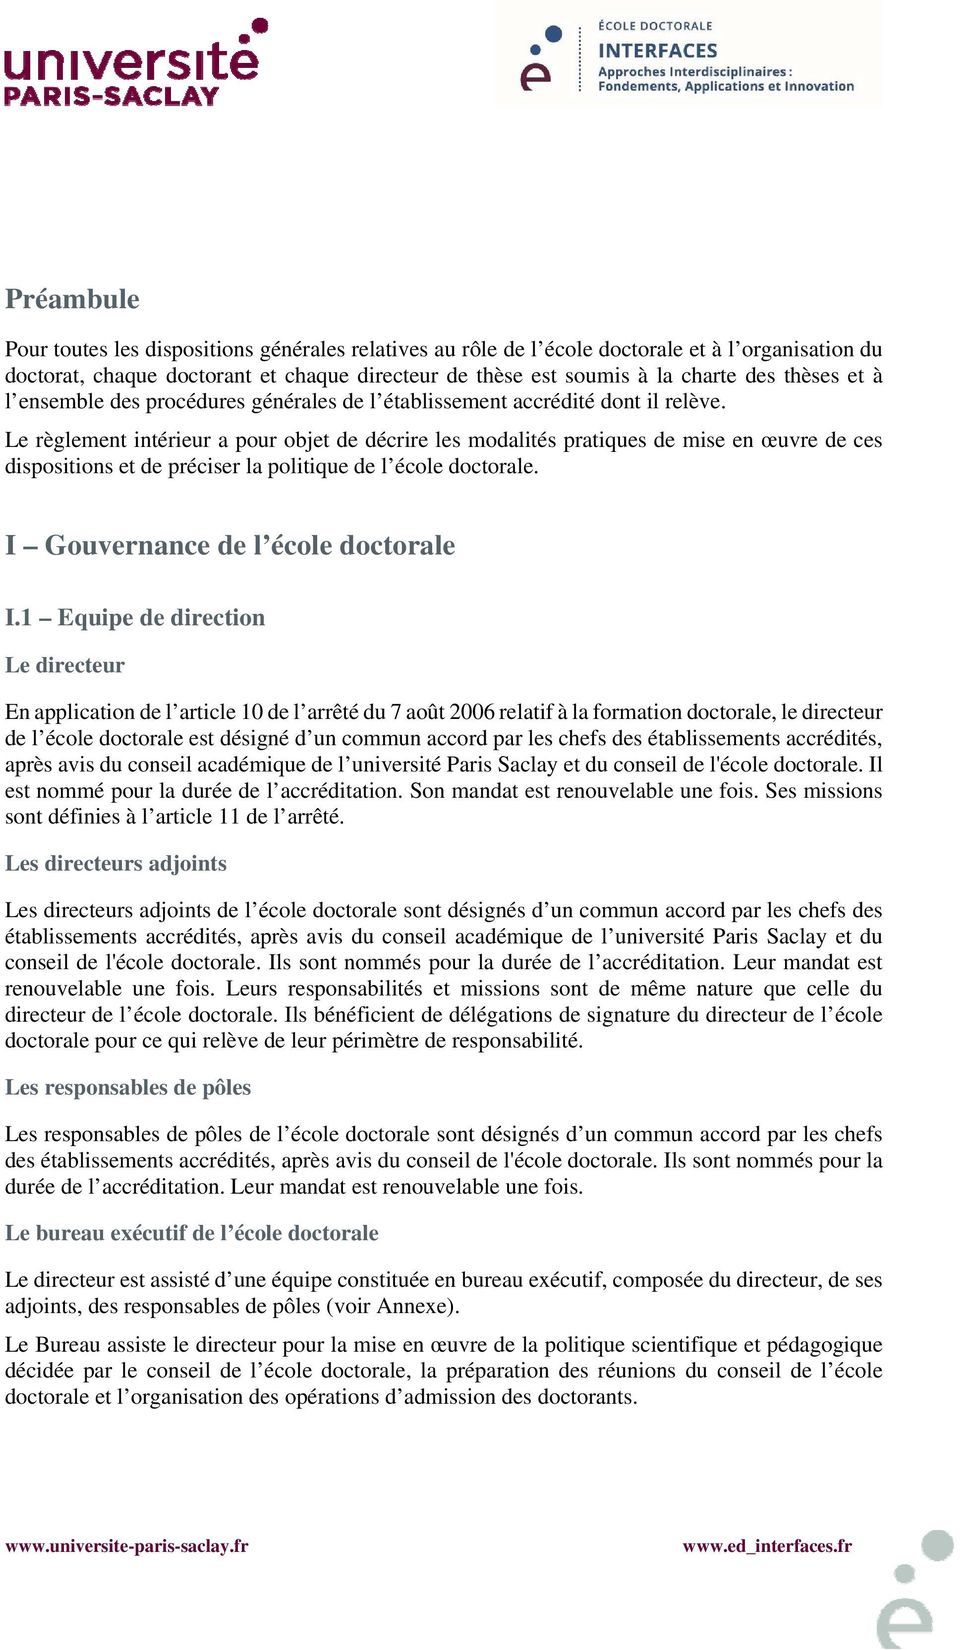 Reglement Interieur De L Ecole Doctorale Interfaces Pdf